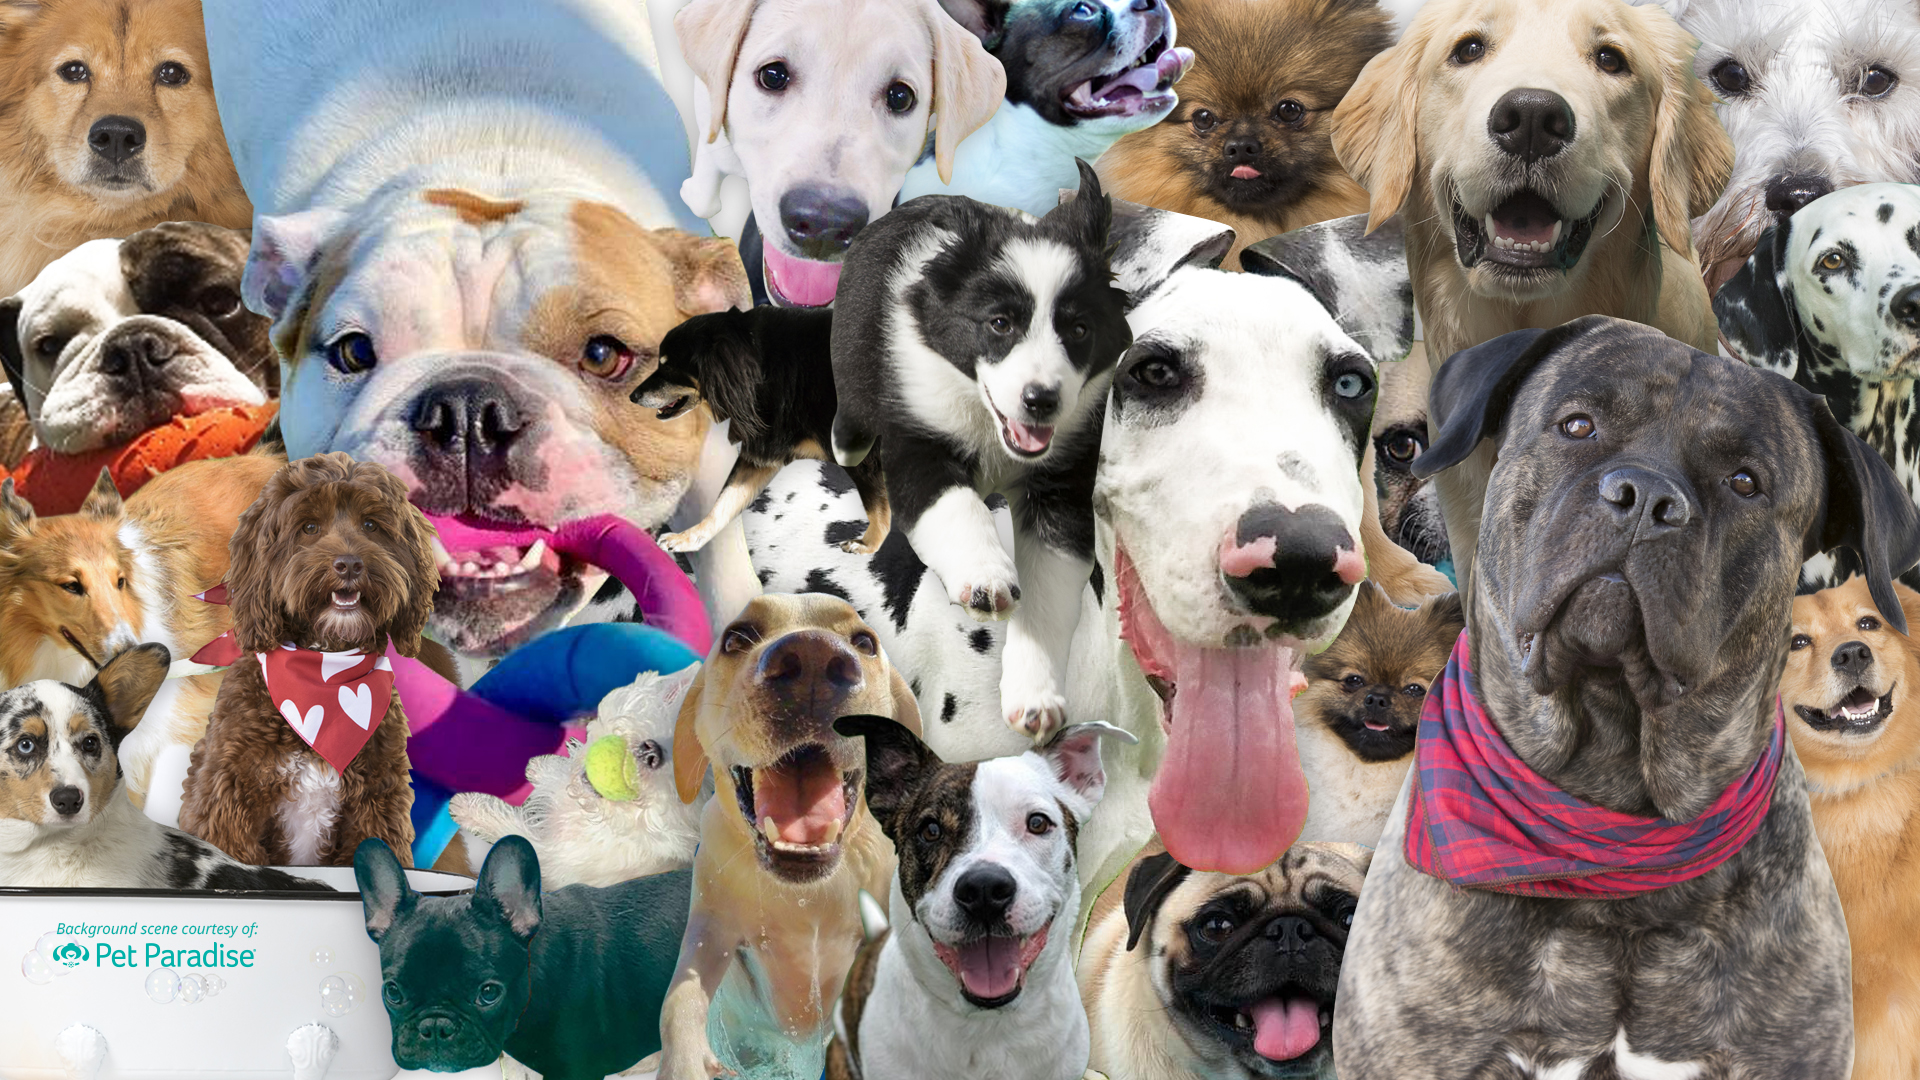 Dog and Cat Zoom Backgrounds Pet Paradise 1920x1080